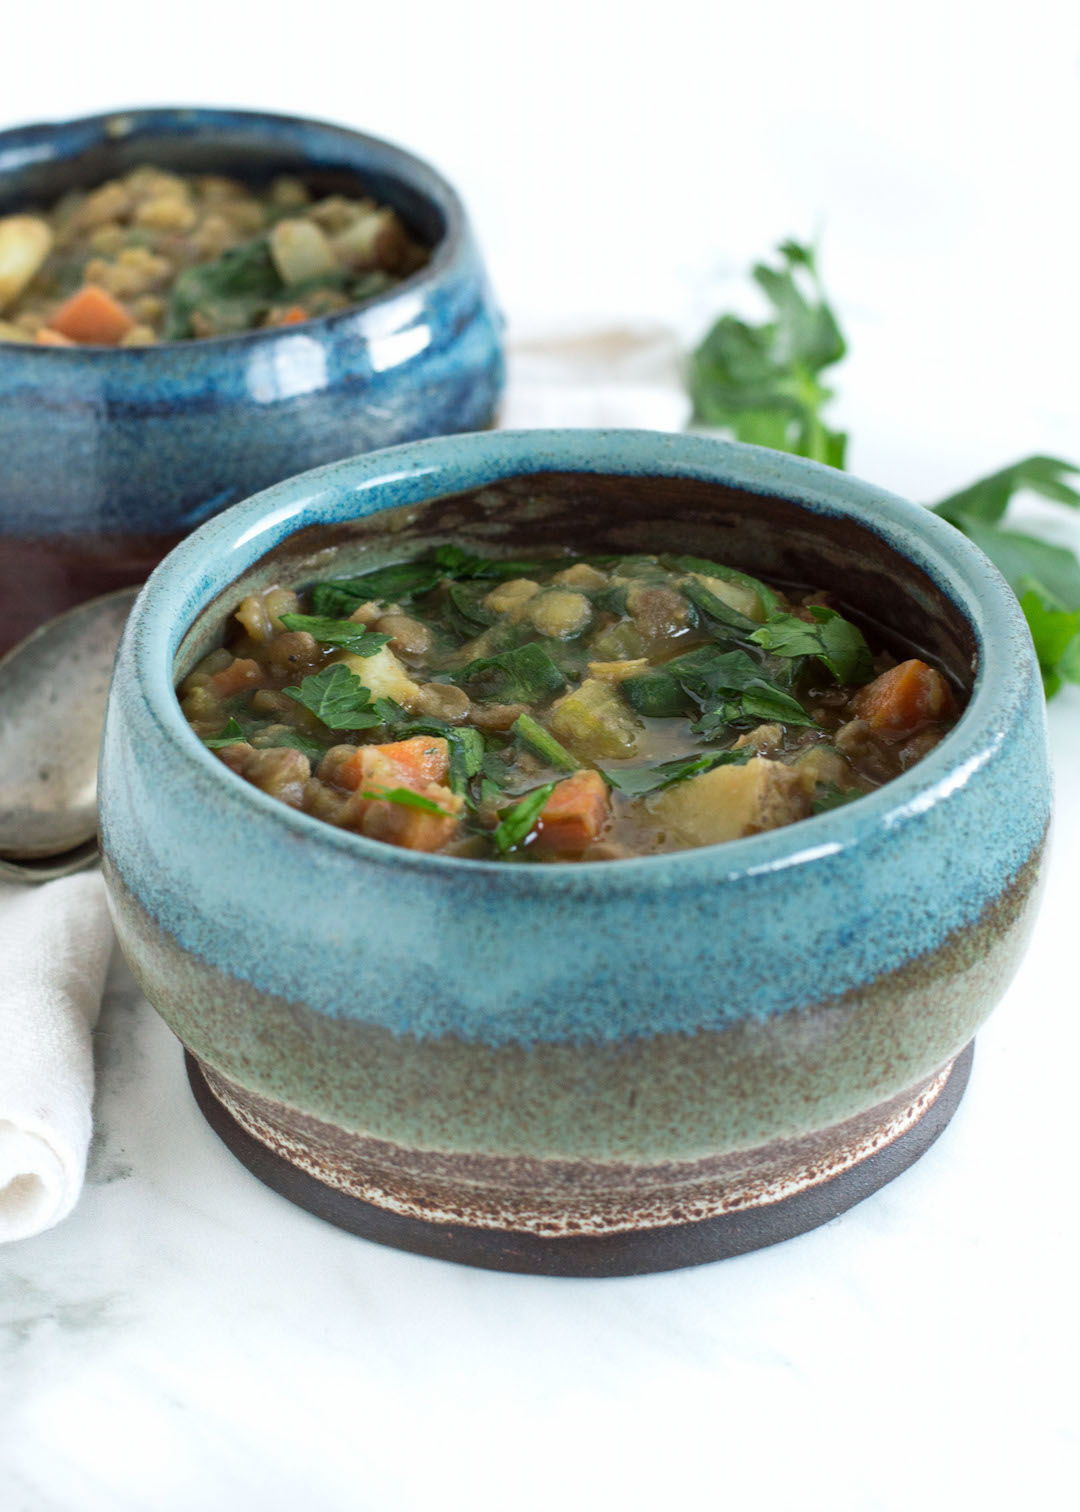 Vegan Warming Lentil Stew | vegetable stew | gluten free, vegan | easy to make | healthy soup | dinner, make ahead meal | nourishedtheblog.com |